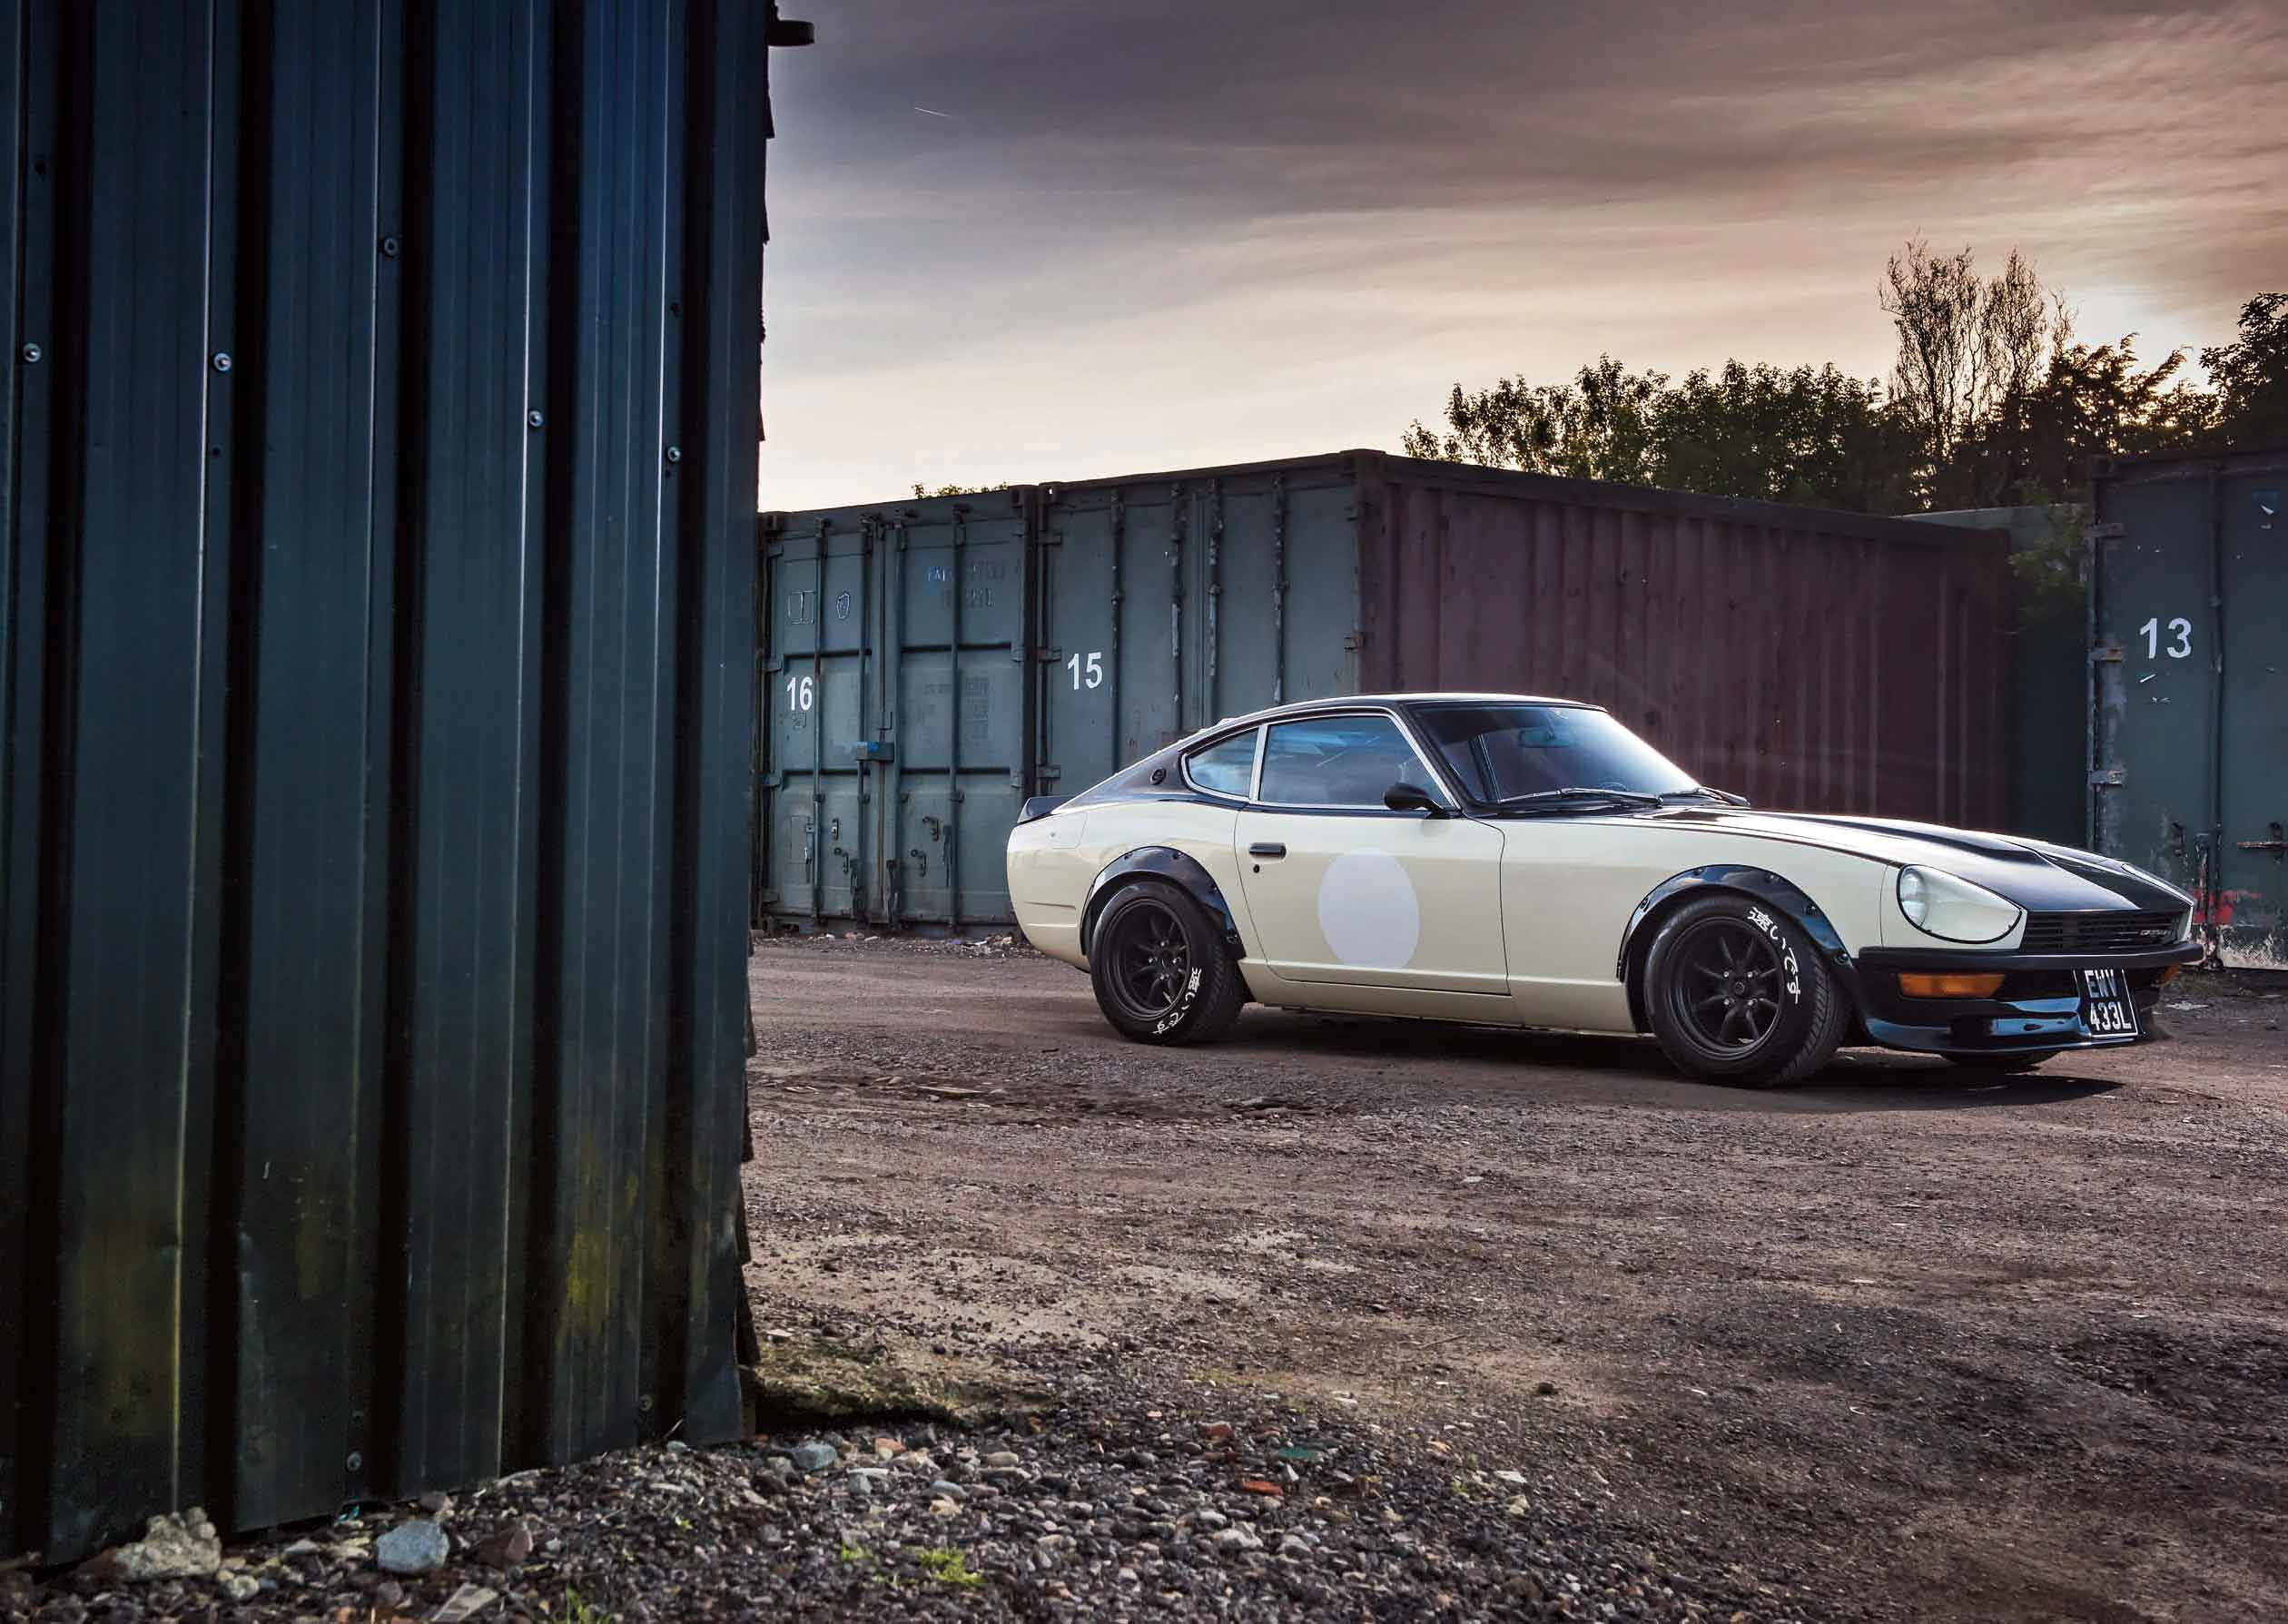 Modified Datsun 240Z L28-engined P90 turbo 220bhp - Drive-My Blogs